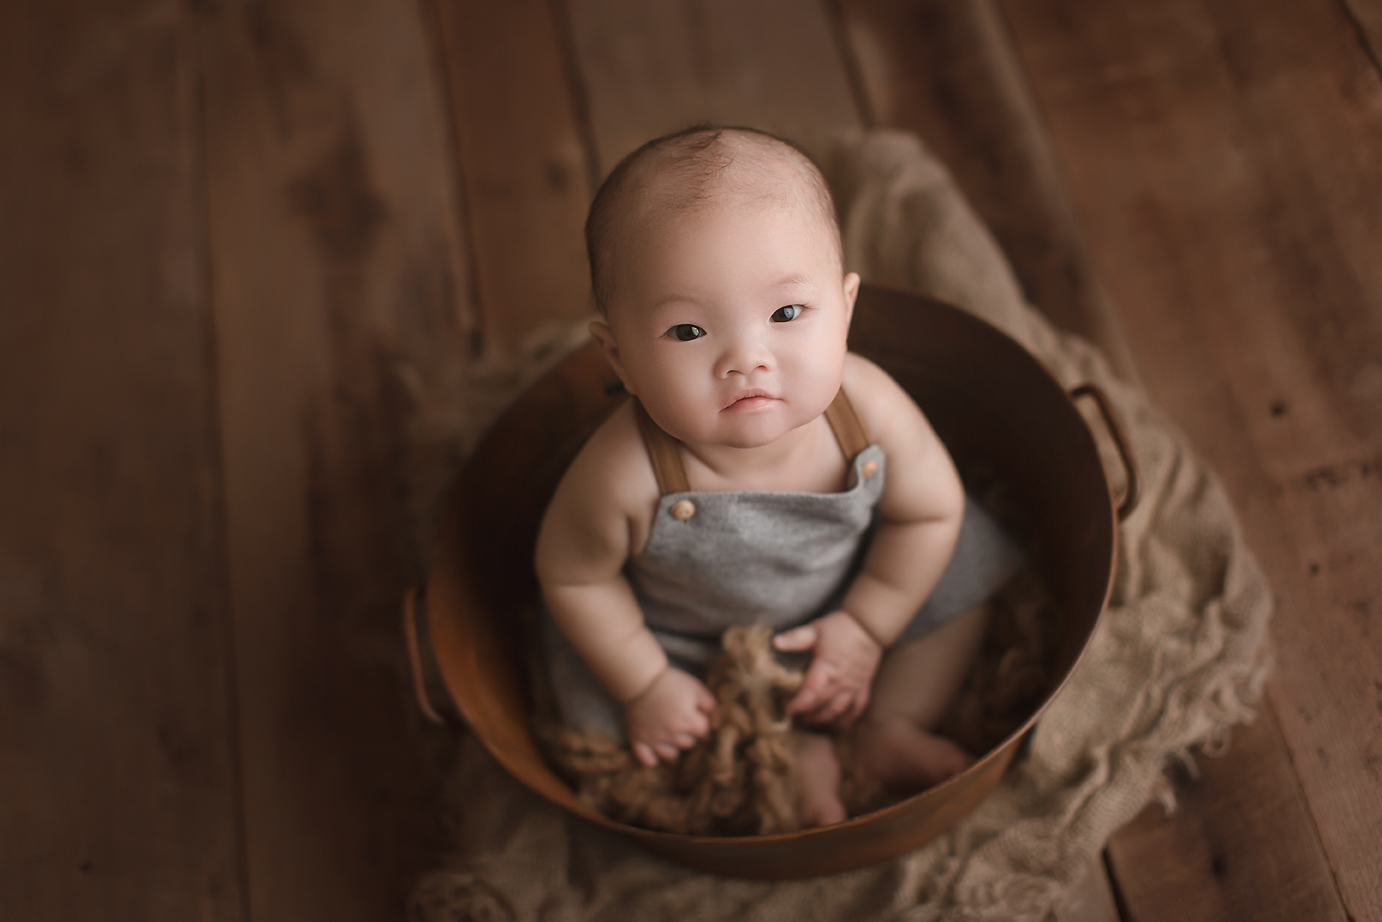 irvine-baby-photographer-orange-county-studio-organic-natural-barnwood-metal-tub-rustic.jpg